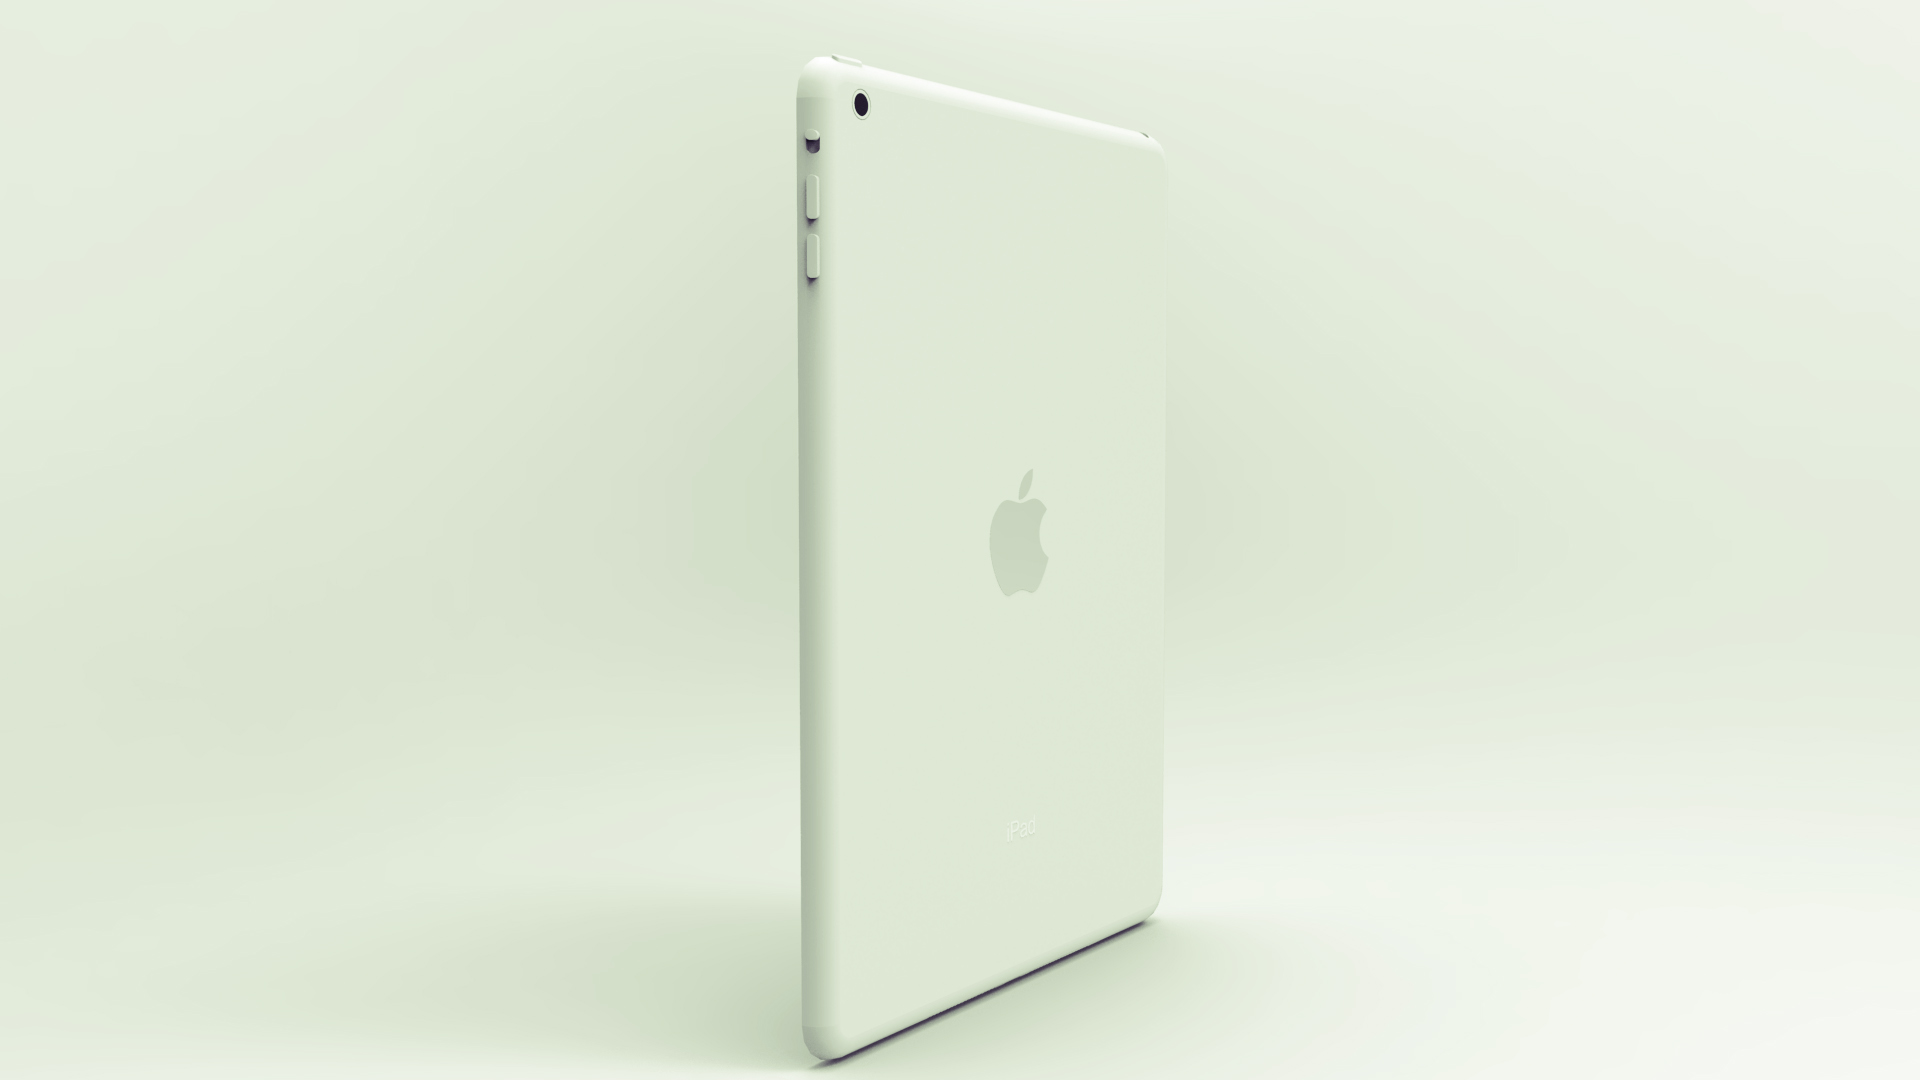 apple ipad air 3d model fbx other  obj 158571